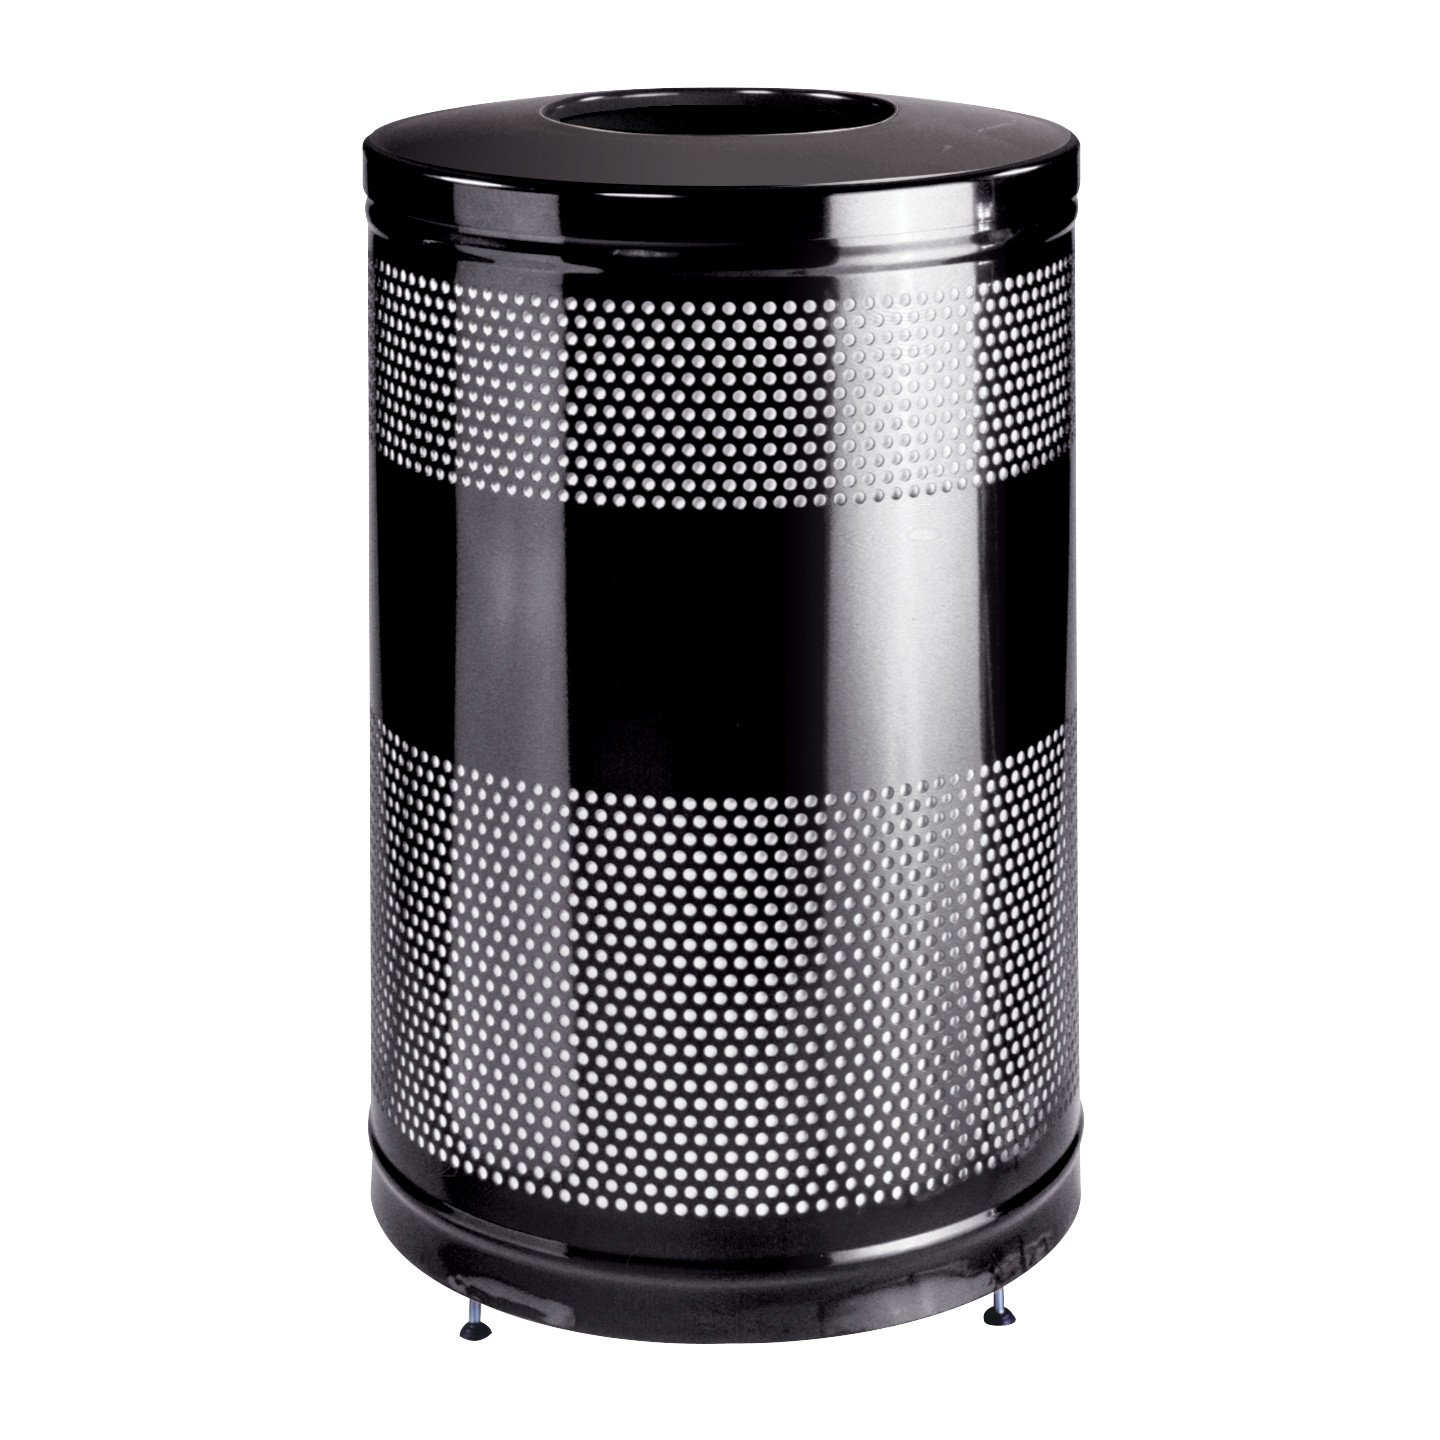 simplehuman can cans wastebasket bags bob black recycle decoupage vila baskets waste brilliant retro them plastic lowes walmartcom to wesco target hotel ways paper nice handled step litre hefty dimensions gallon trash decorative bedroom bathroom on amazon reuse decor bin liter open outdoor